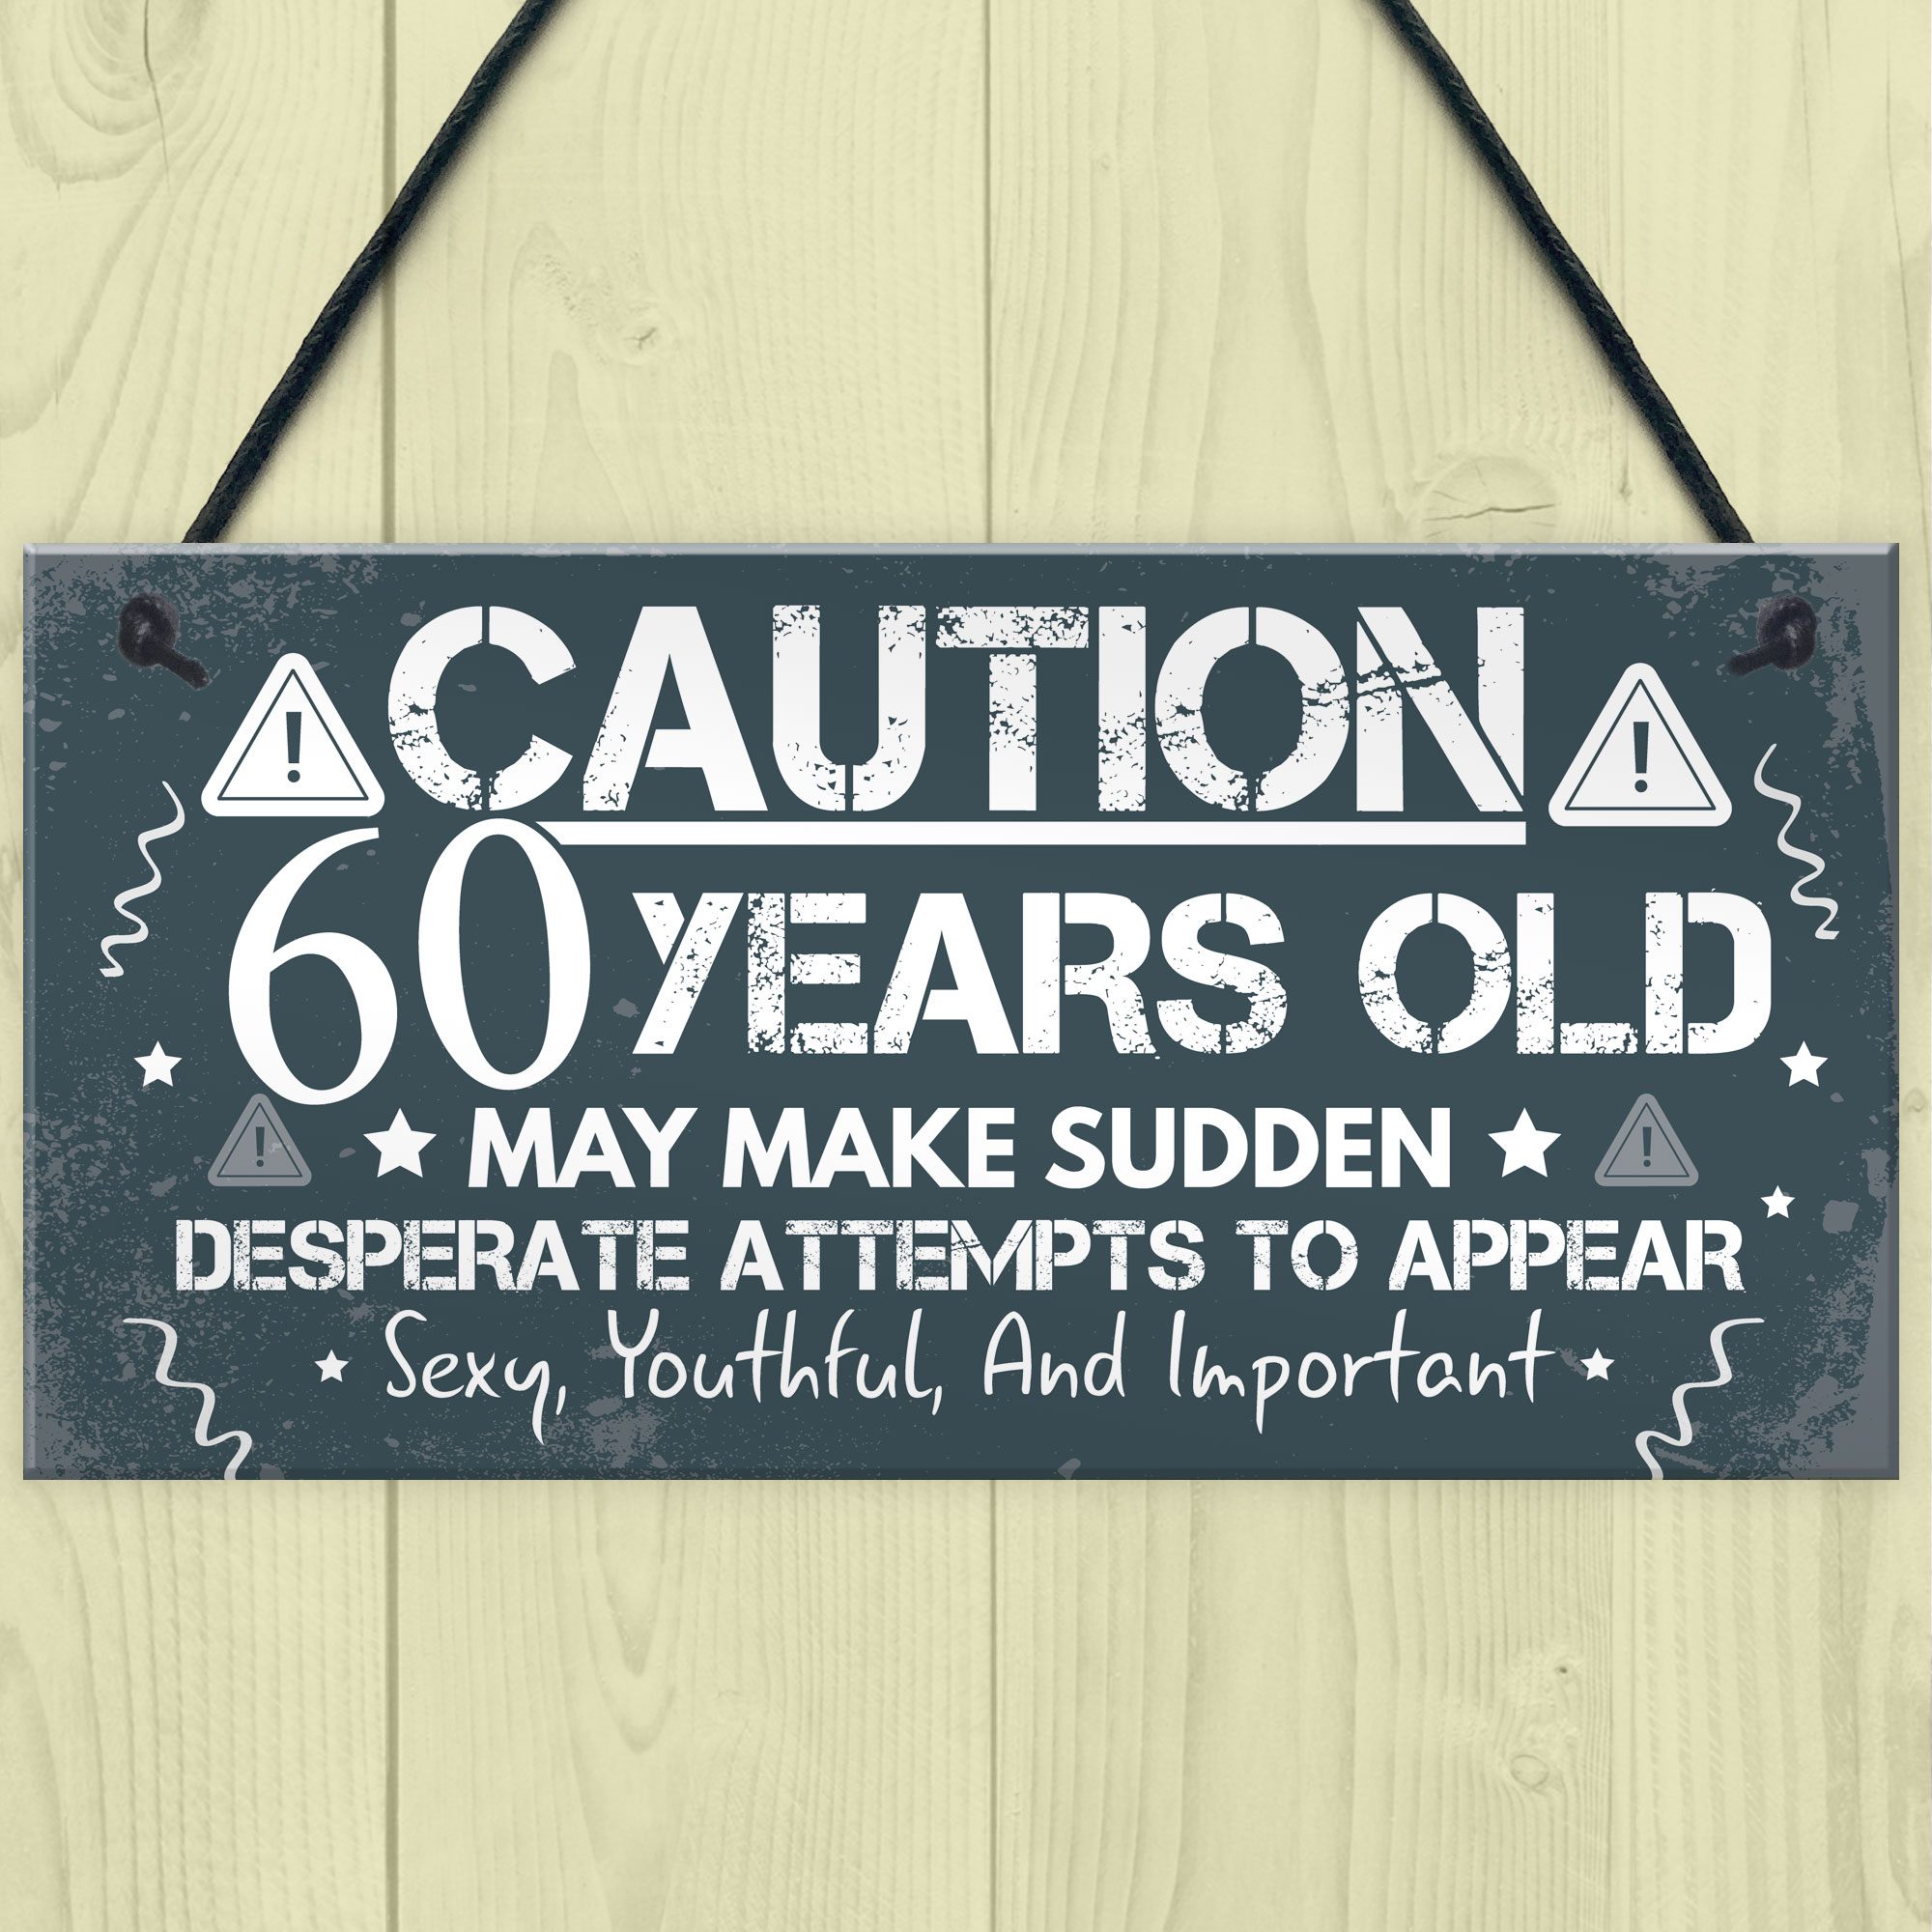 Details About 60th Birthday Card For Men Women Friend Gifts Him Her Plaques